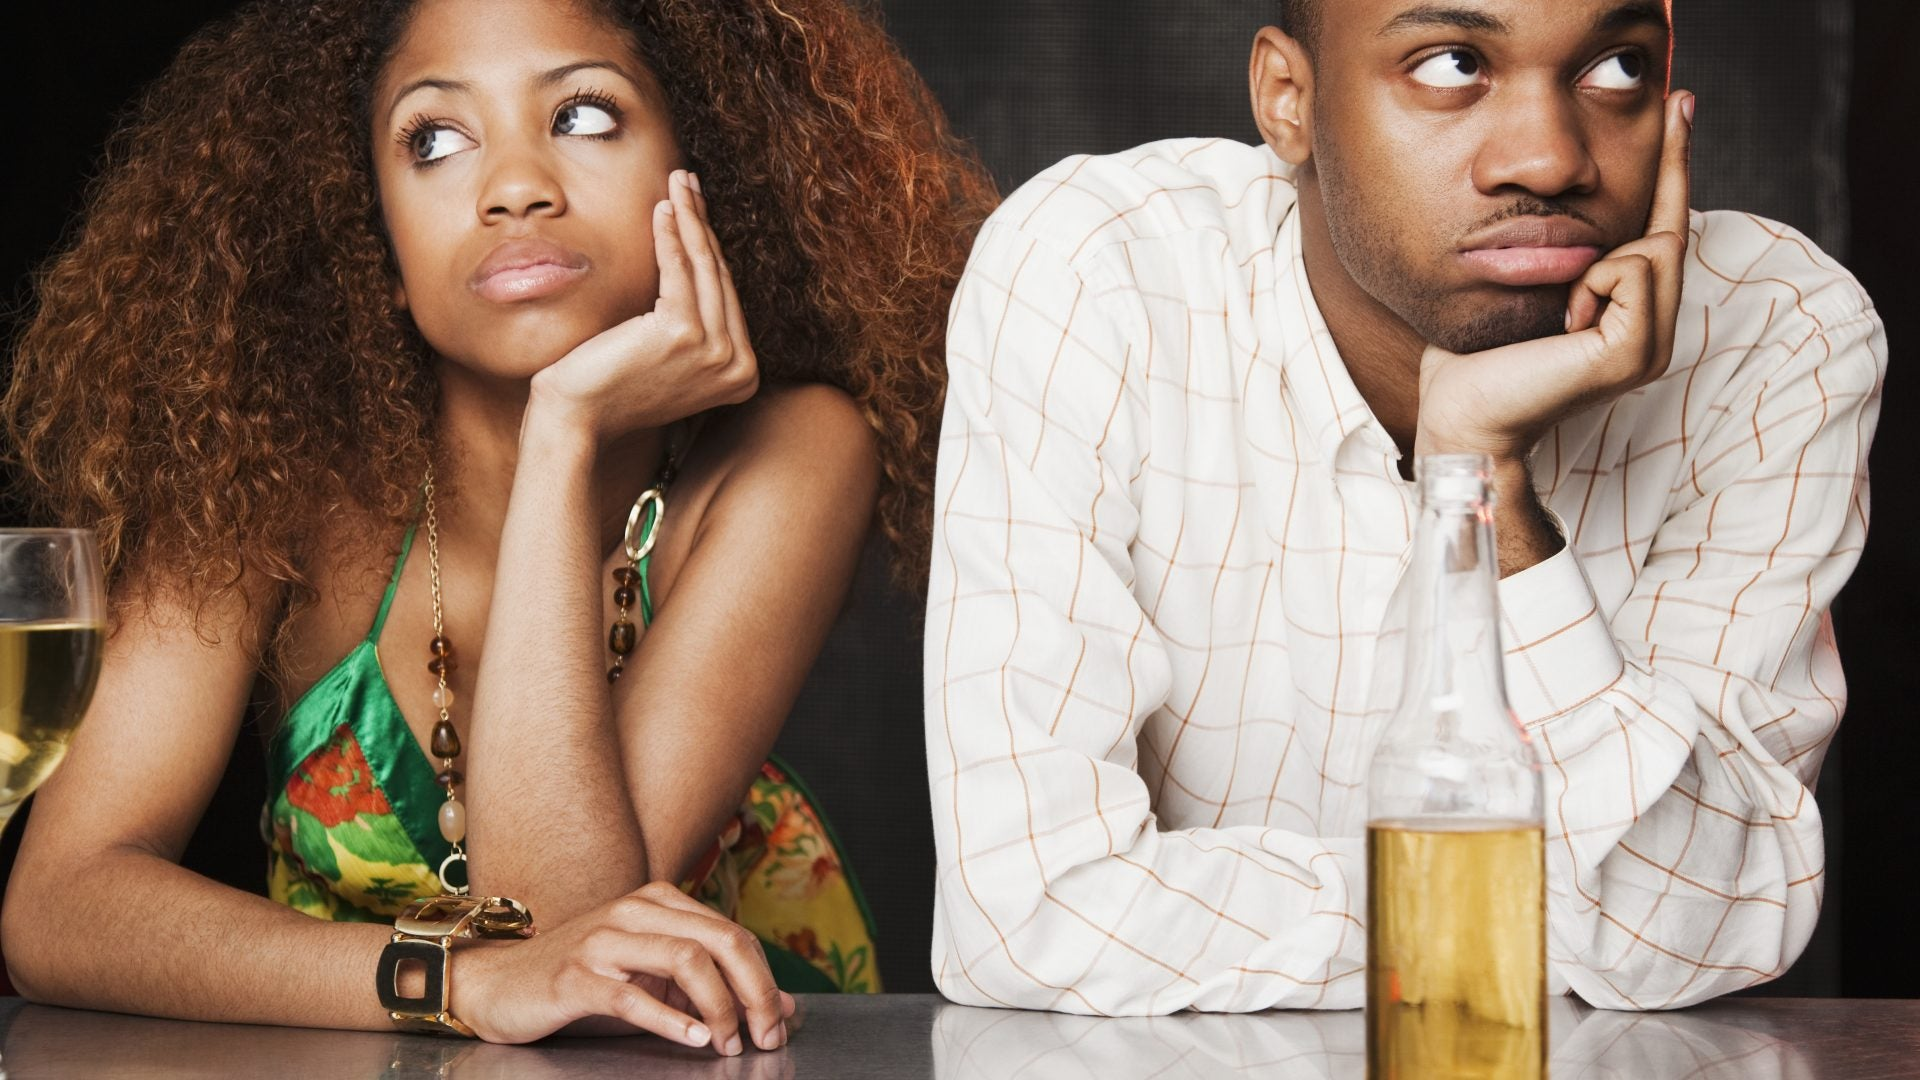 Professional Matchmakers Asked Black Men About Their Dating Pet Peeves